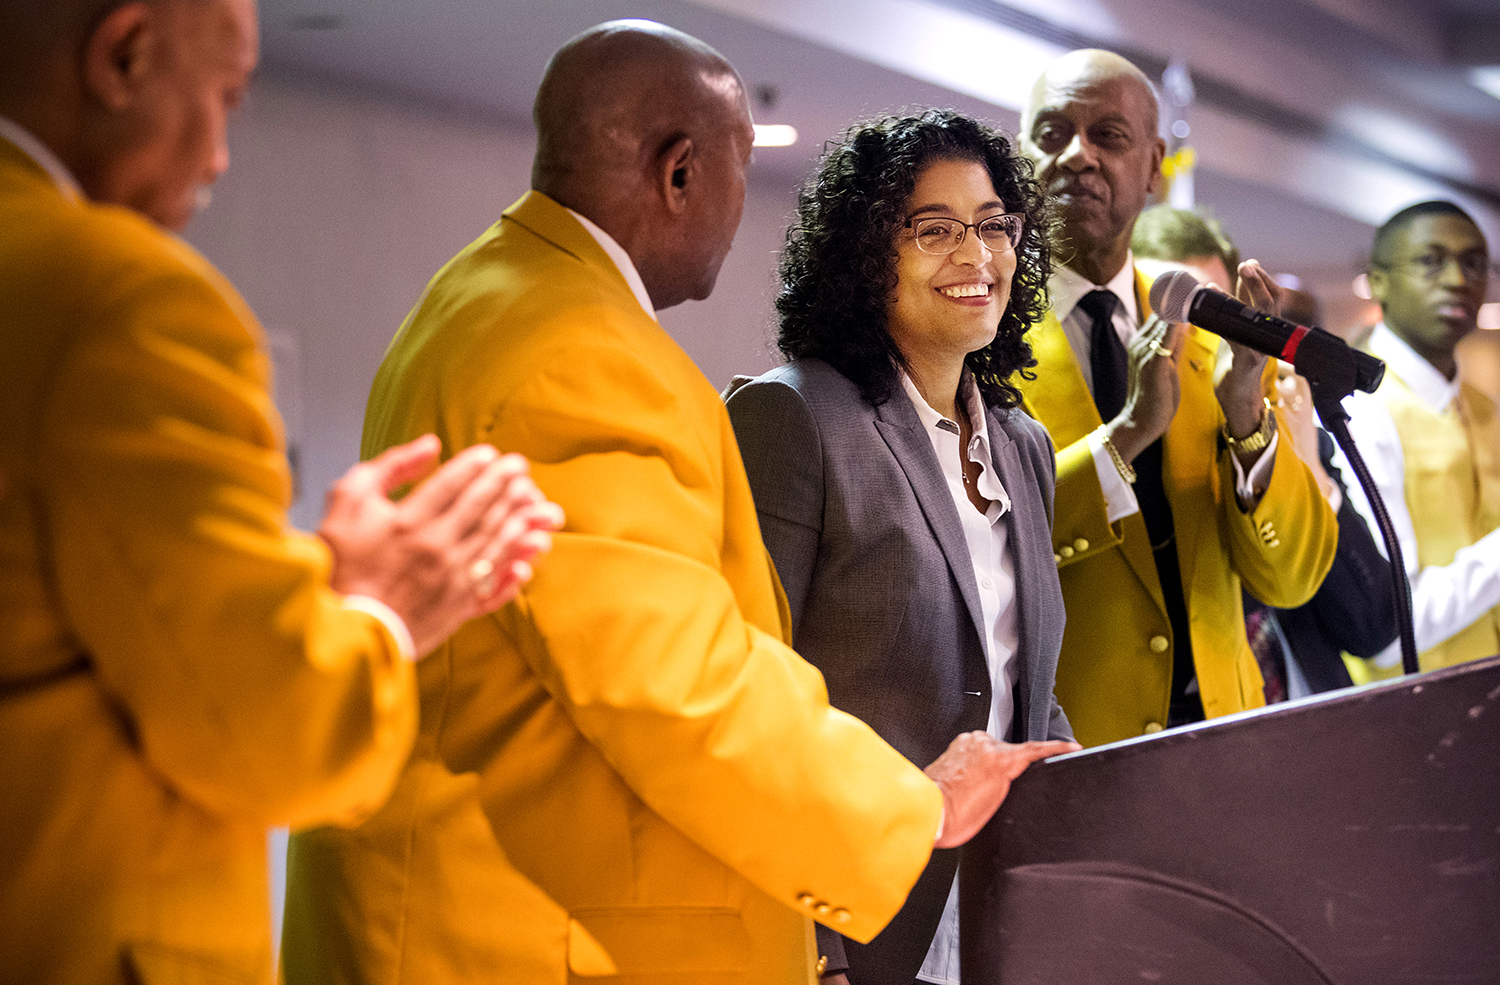 Professor Tracey L. Meares, Walton Hale Hamilton Professor of Law and a founding director of the Justice Collaboratory at Yale Law School and a Springfield native, acknowledges the standing ovation at the conclusion of her speech at the 44th annual Dr. Martin Luther King Jr. Memorial Breakfast in Springfield Monday, Jan. 21, 2019. [Ted Schurter/The State Journal-Register]